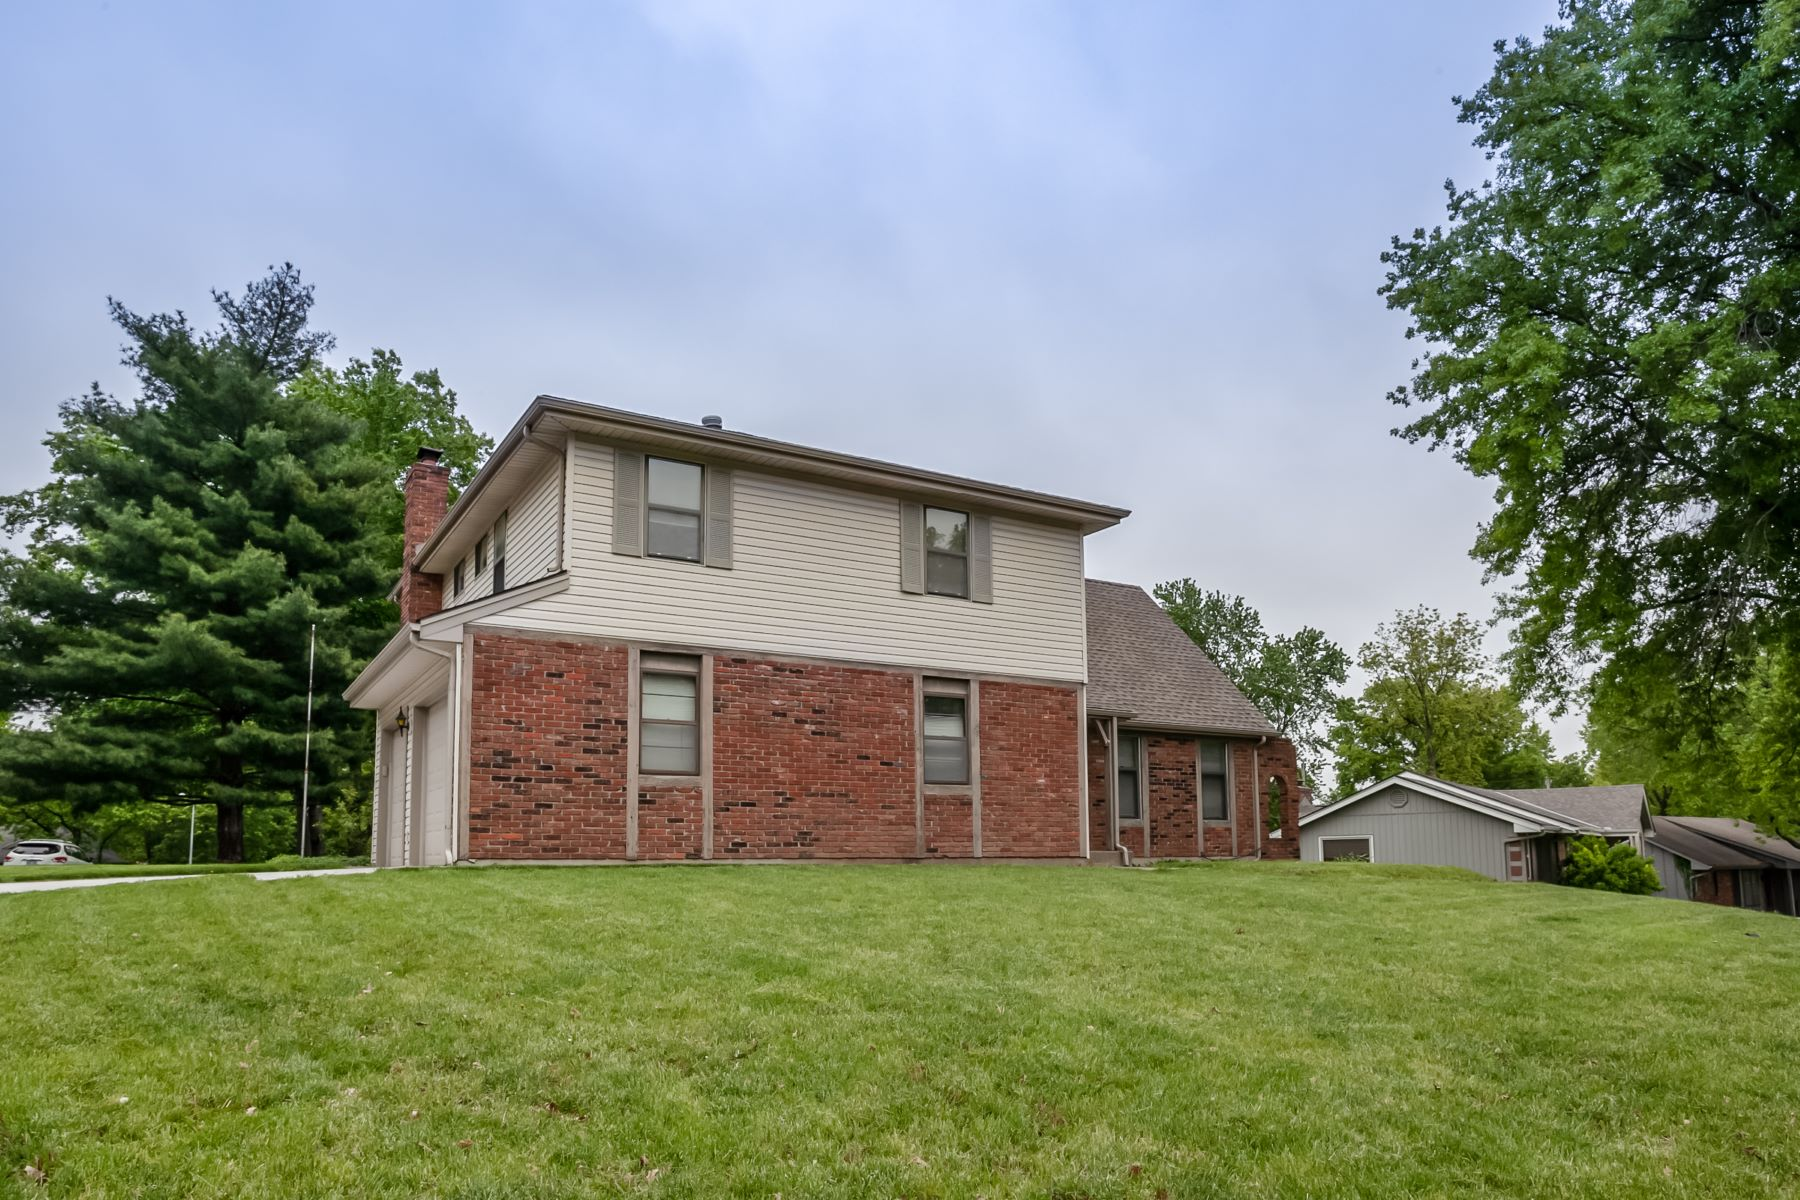 Single Family Homes for Active at Williamsburg 5233 Northwest Old Pike Road Kansas City, Missouri 64118 United States